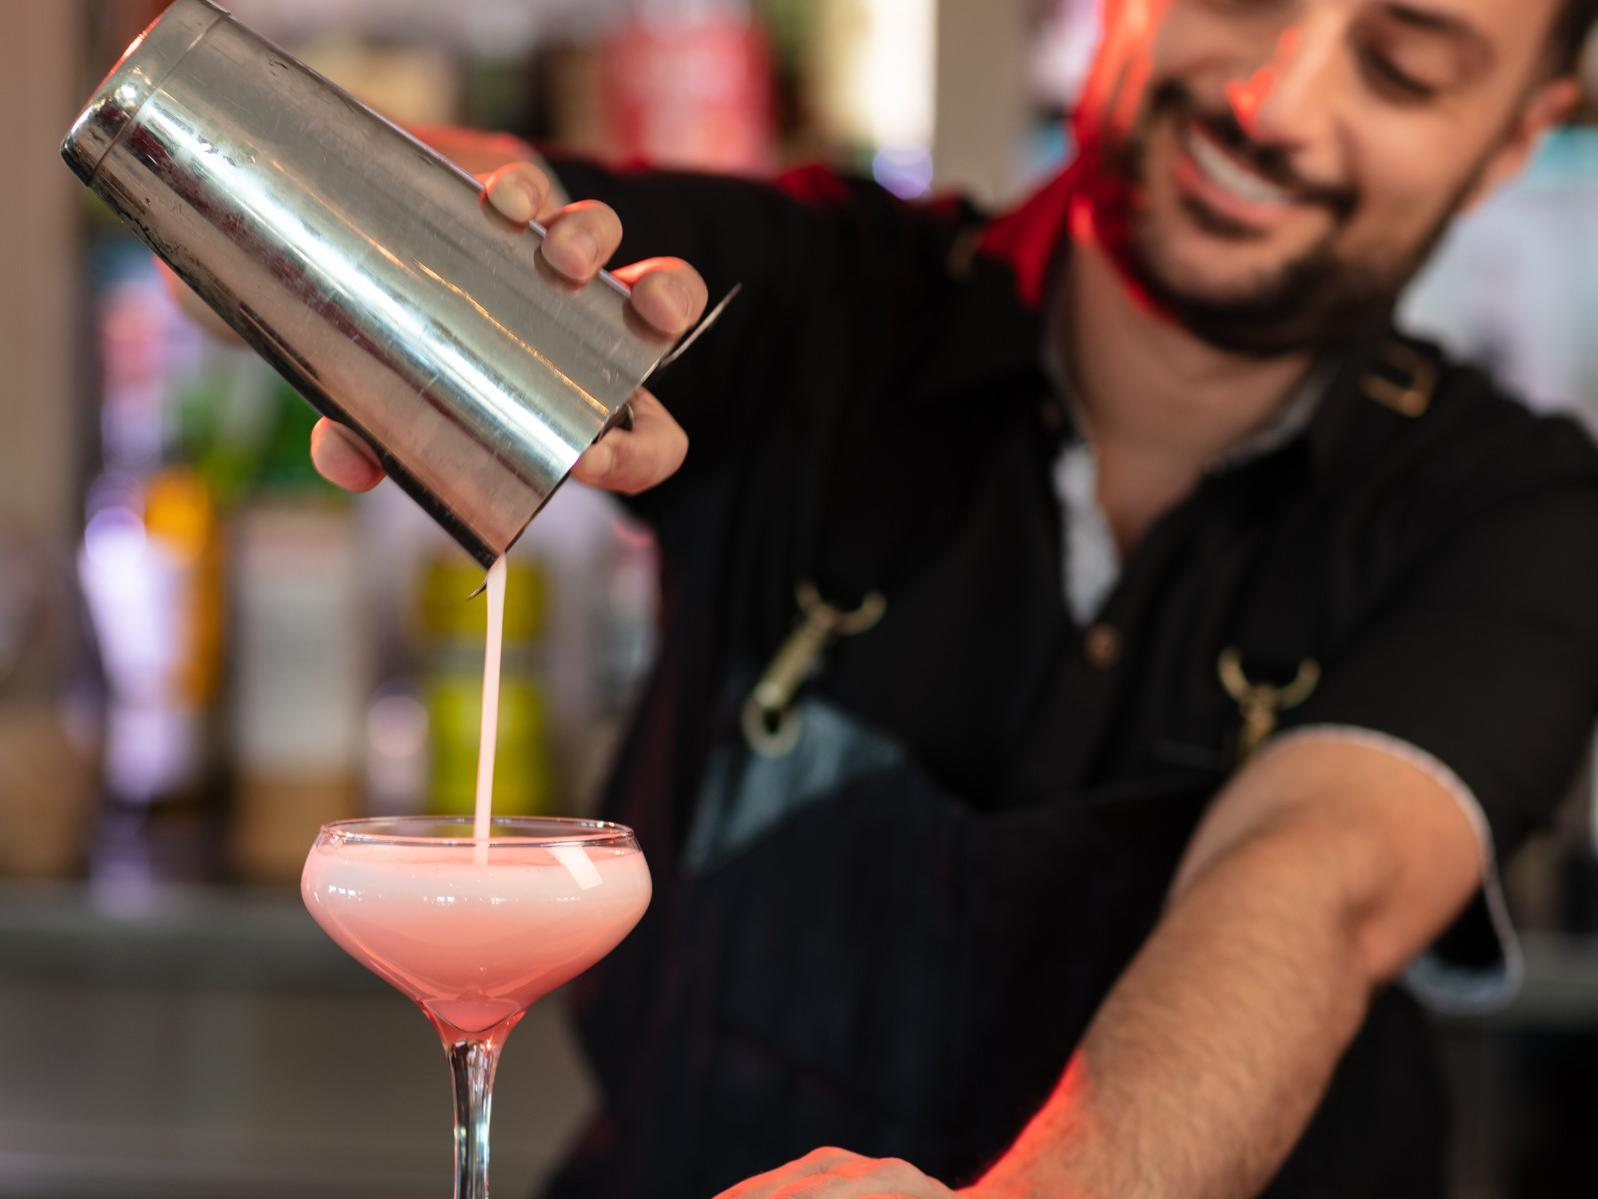 Bartender pouring pink cocktail